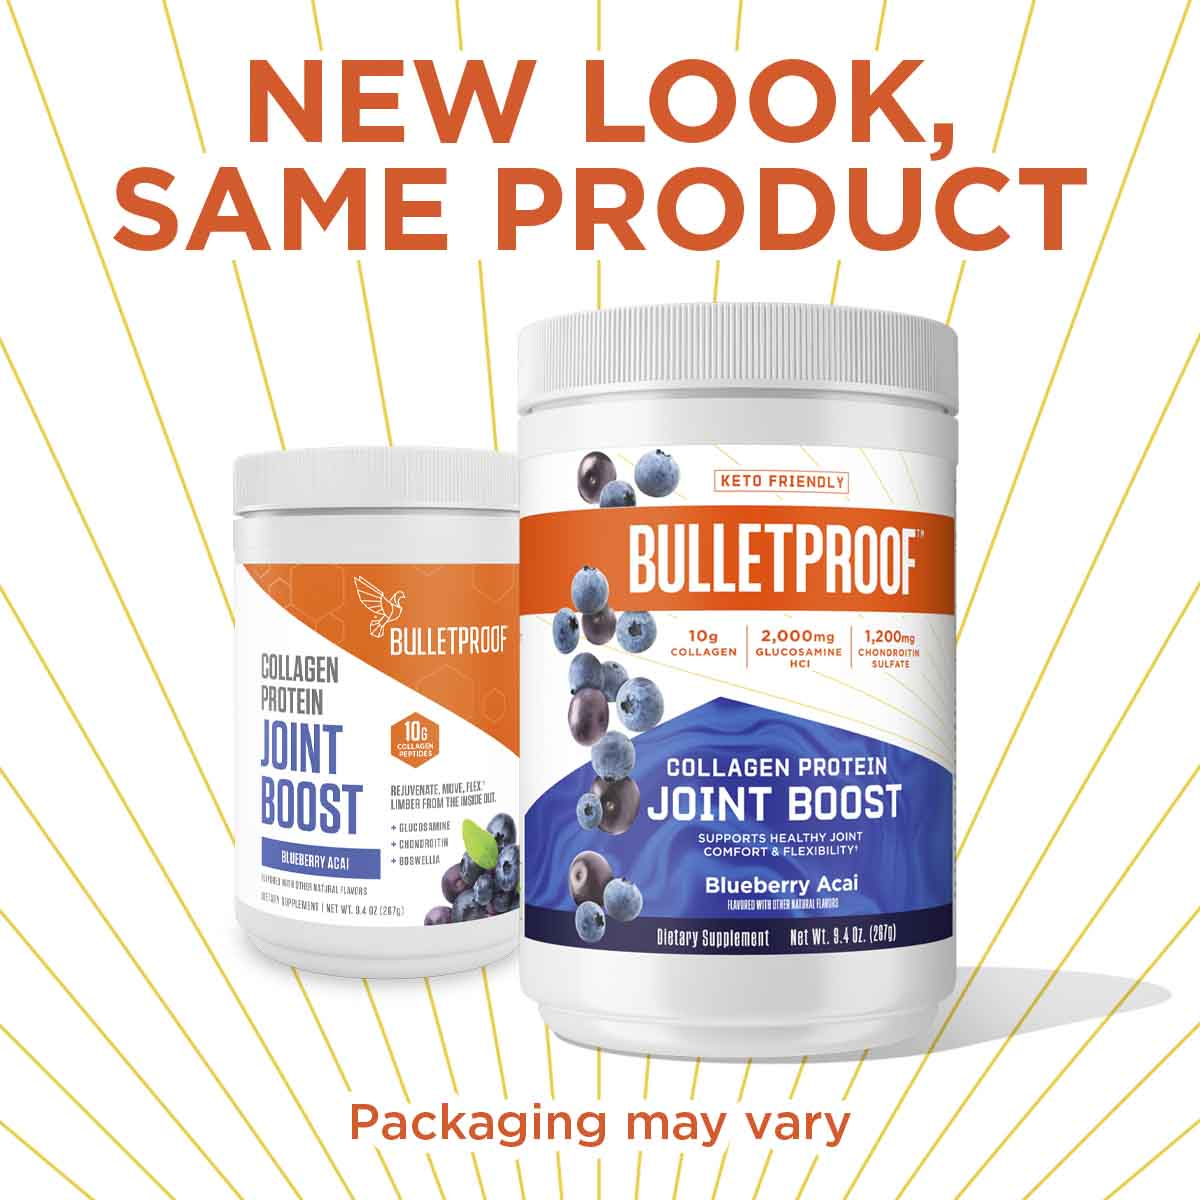 New Look, Same Product Bulletproof Collagen Protein Joint Boost - 9.4 oz